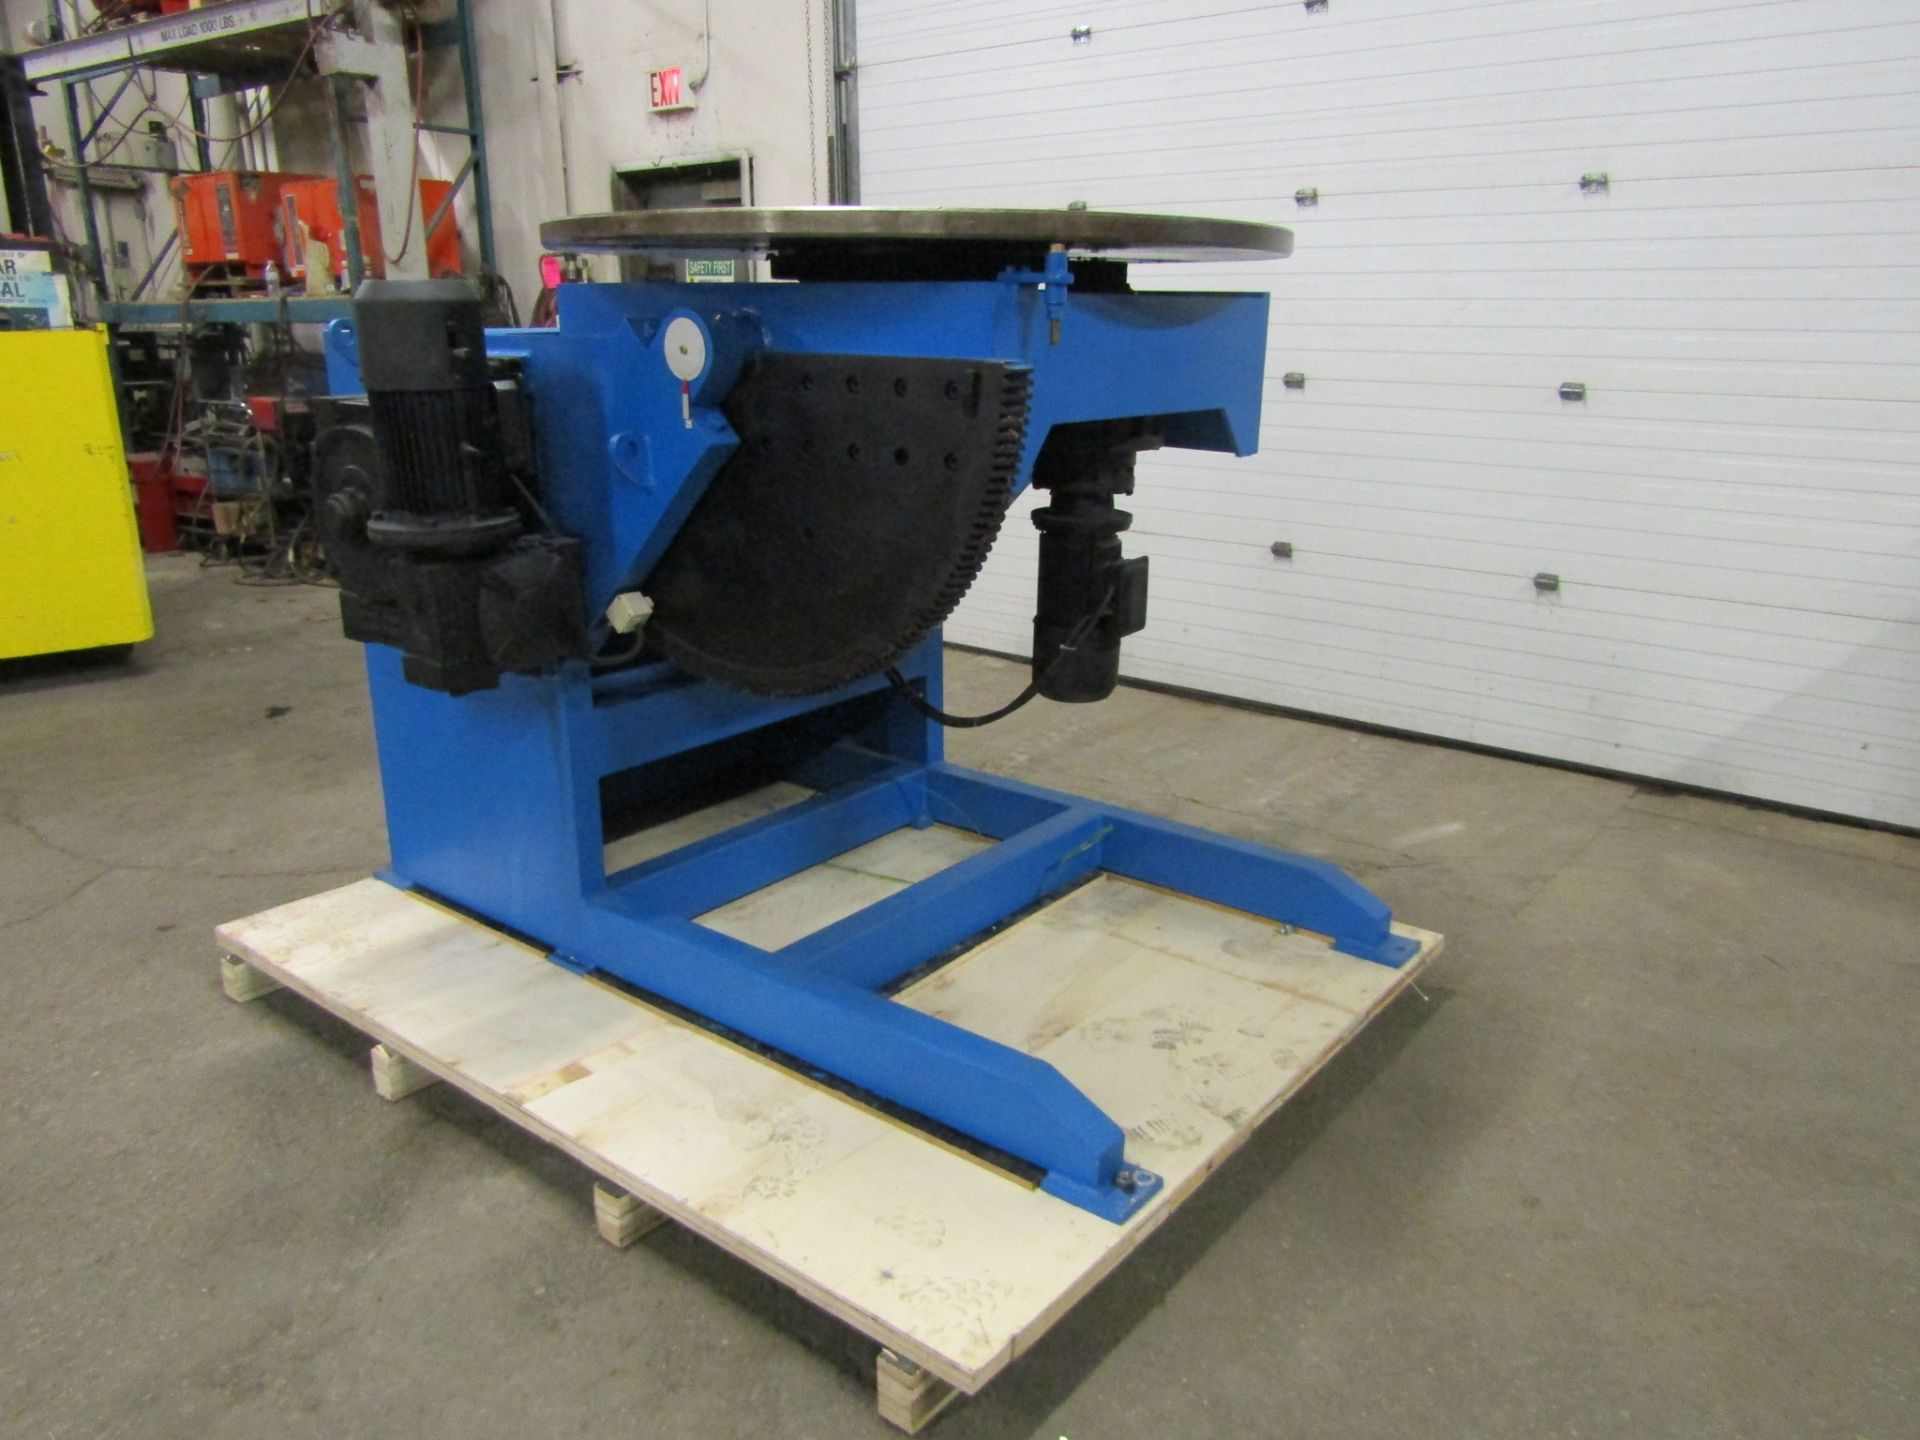 Verner model VD-8000 WELDING POSITIONER 8000lbs capacity - tilt and rotate with variable speed drive